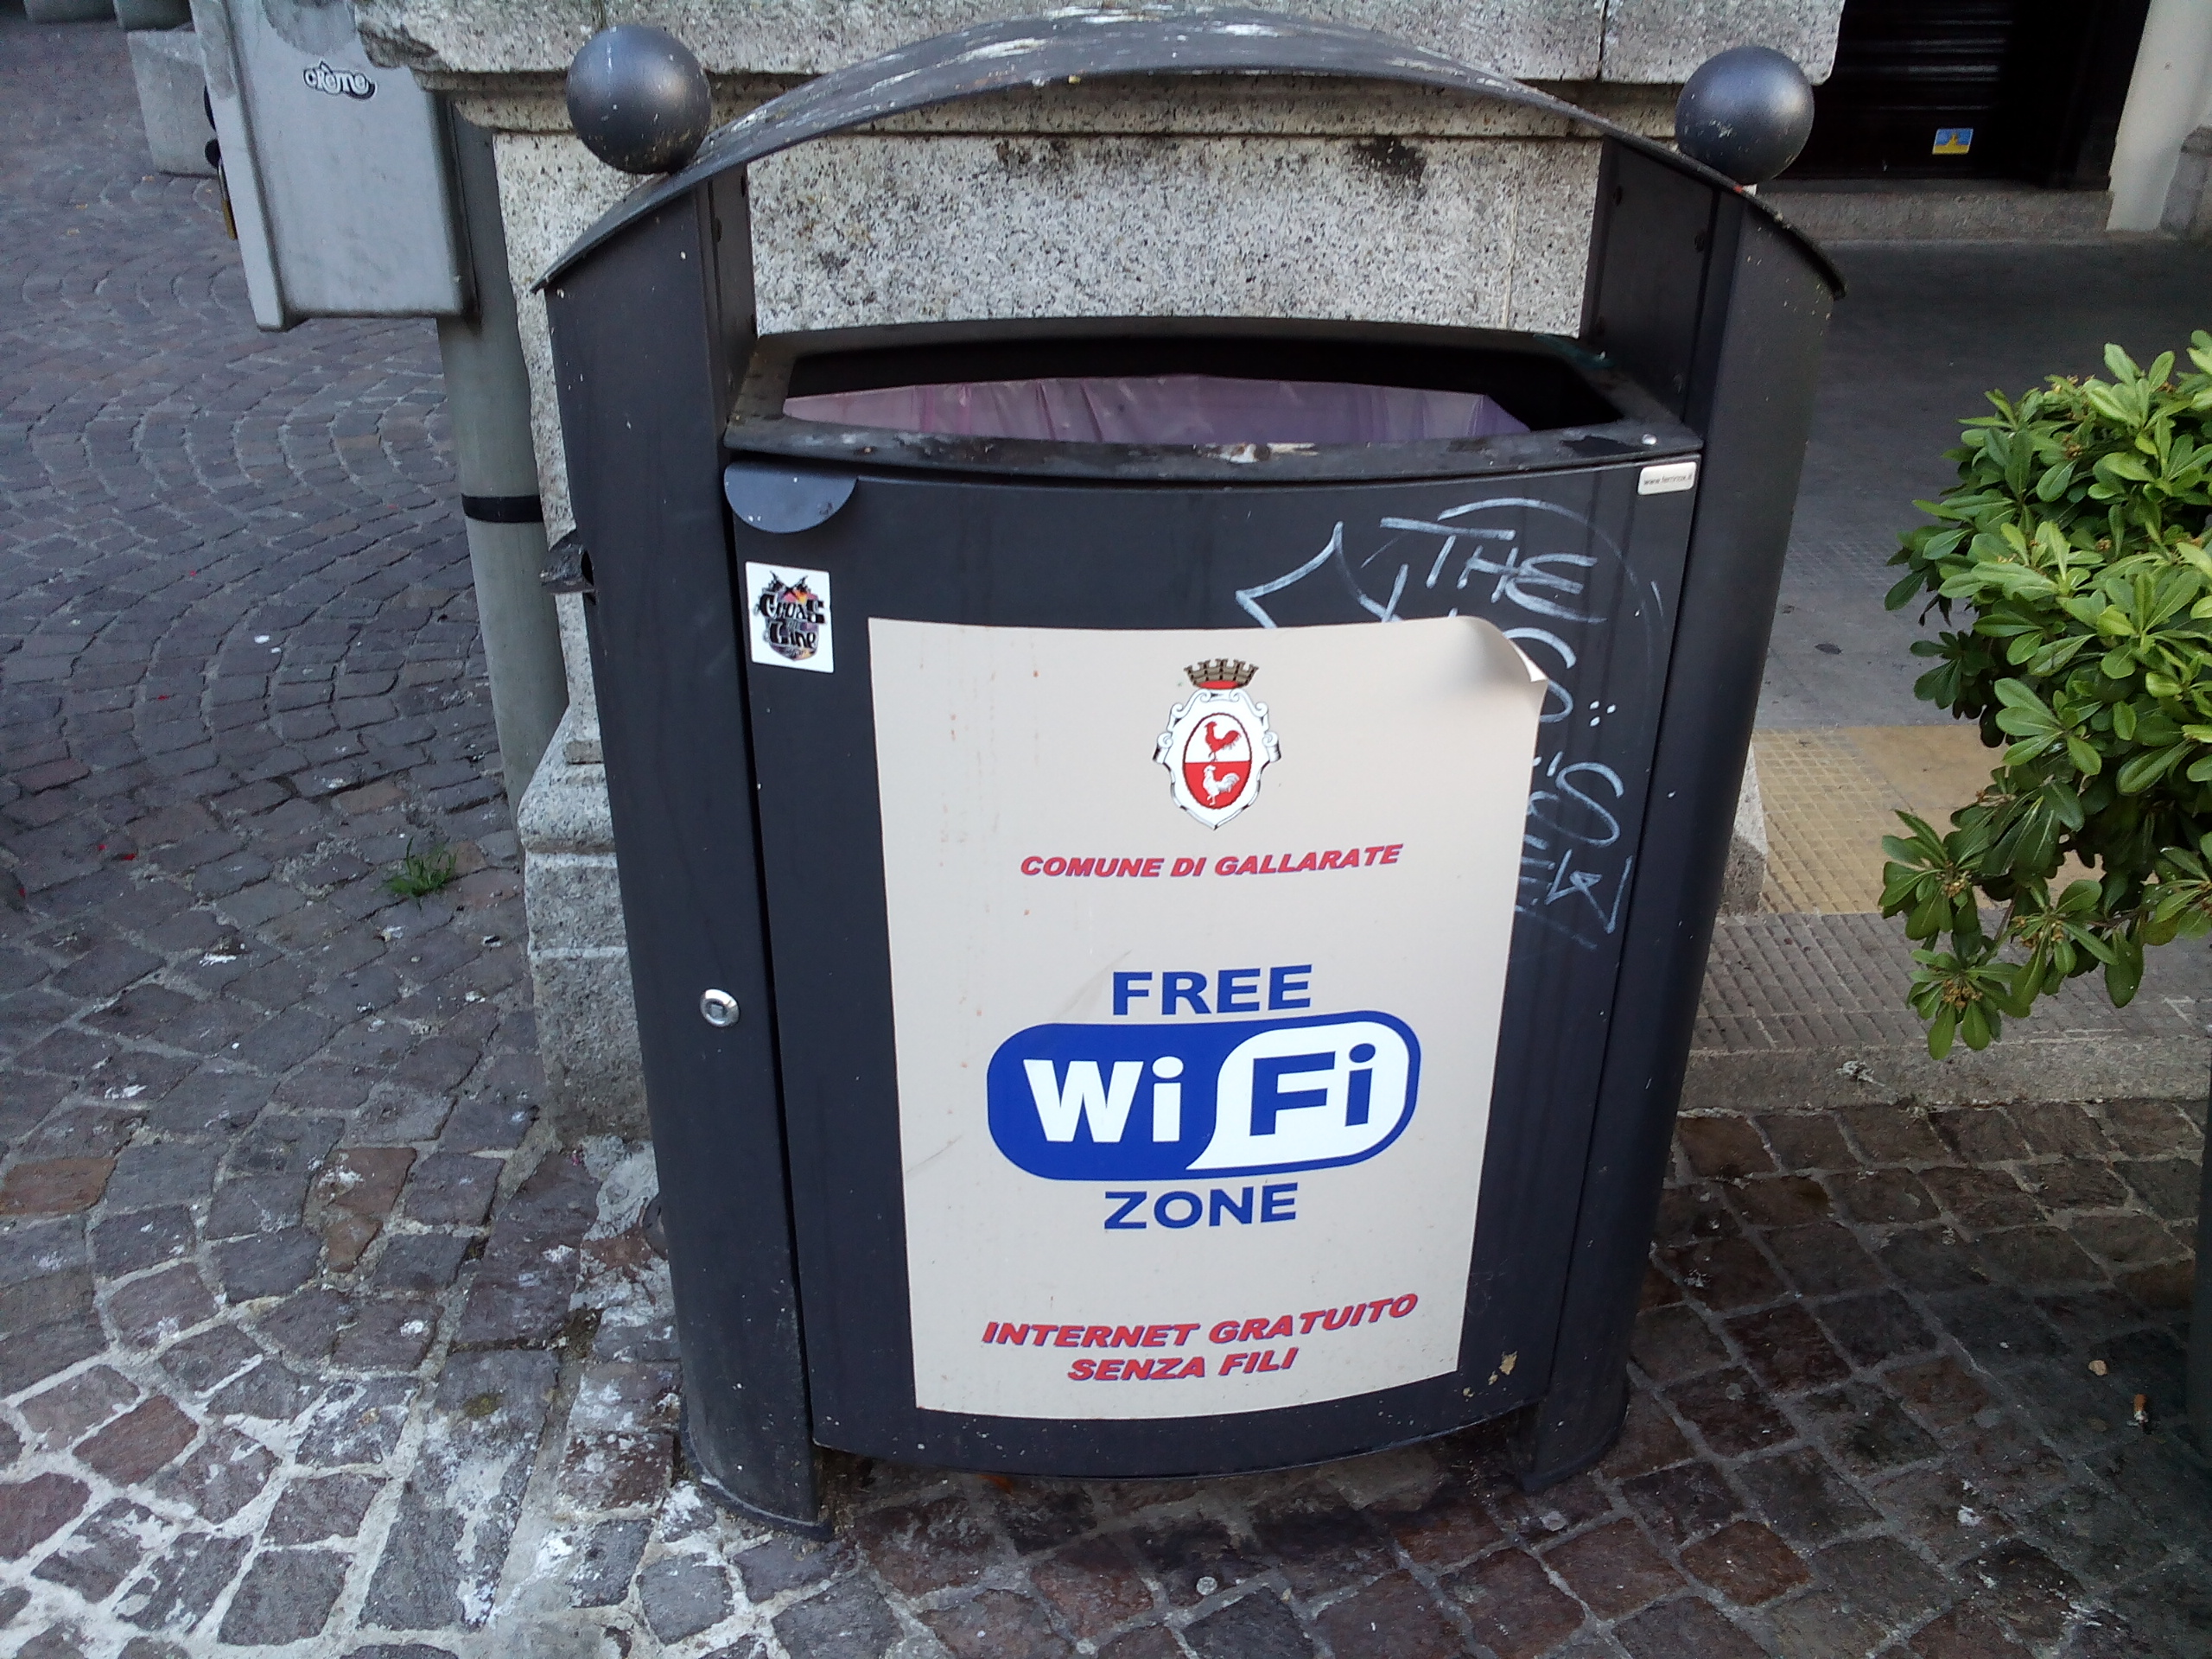 Un cestino dell'immondizia con il cartello WIFi